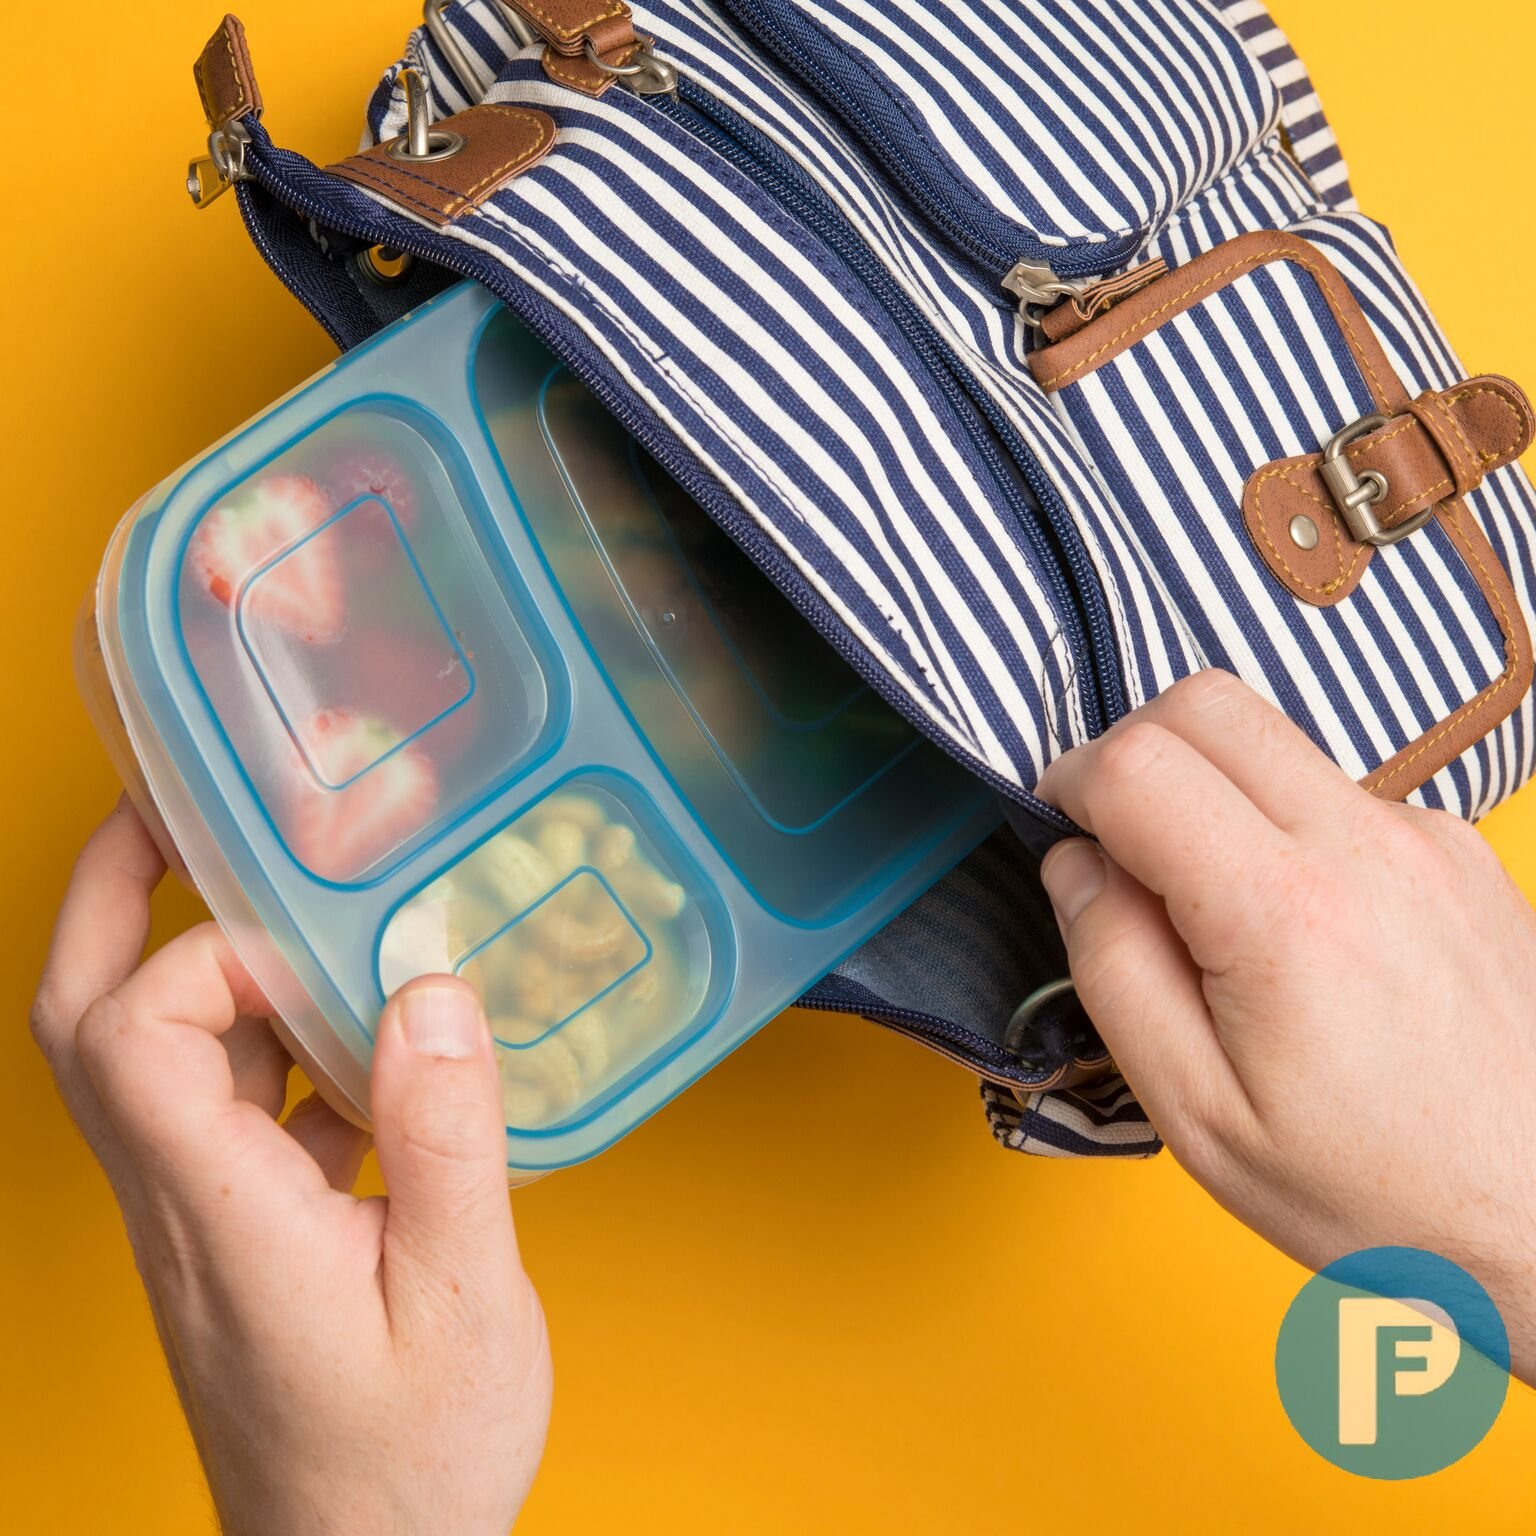 Bento Lunch Box 3 Compartment Food Containers – Set of 10 Storage meal prep Container Boxes– Ideal for Adults, Toddler, Kids, Girls, and Boys – Free 2-in-1 Fork/Spoon & Puzzle Sandwich Cutter by Perfect Fit (Image #6)